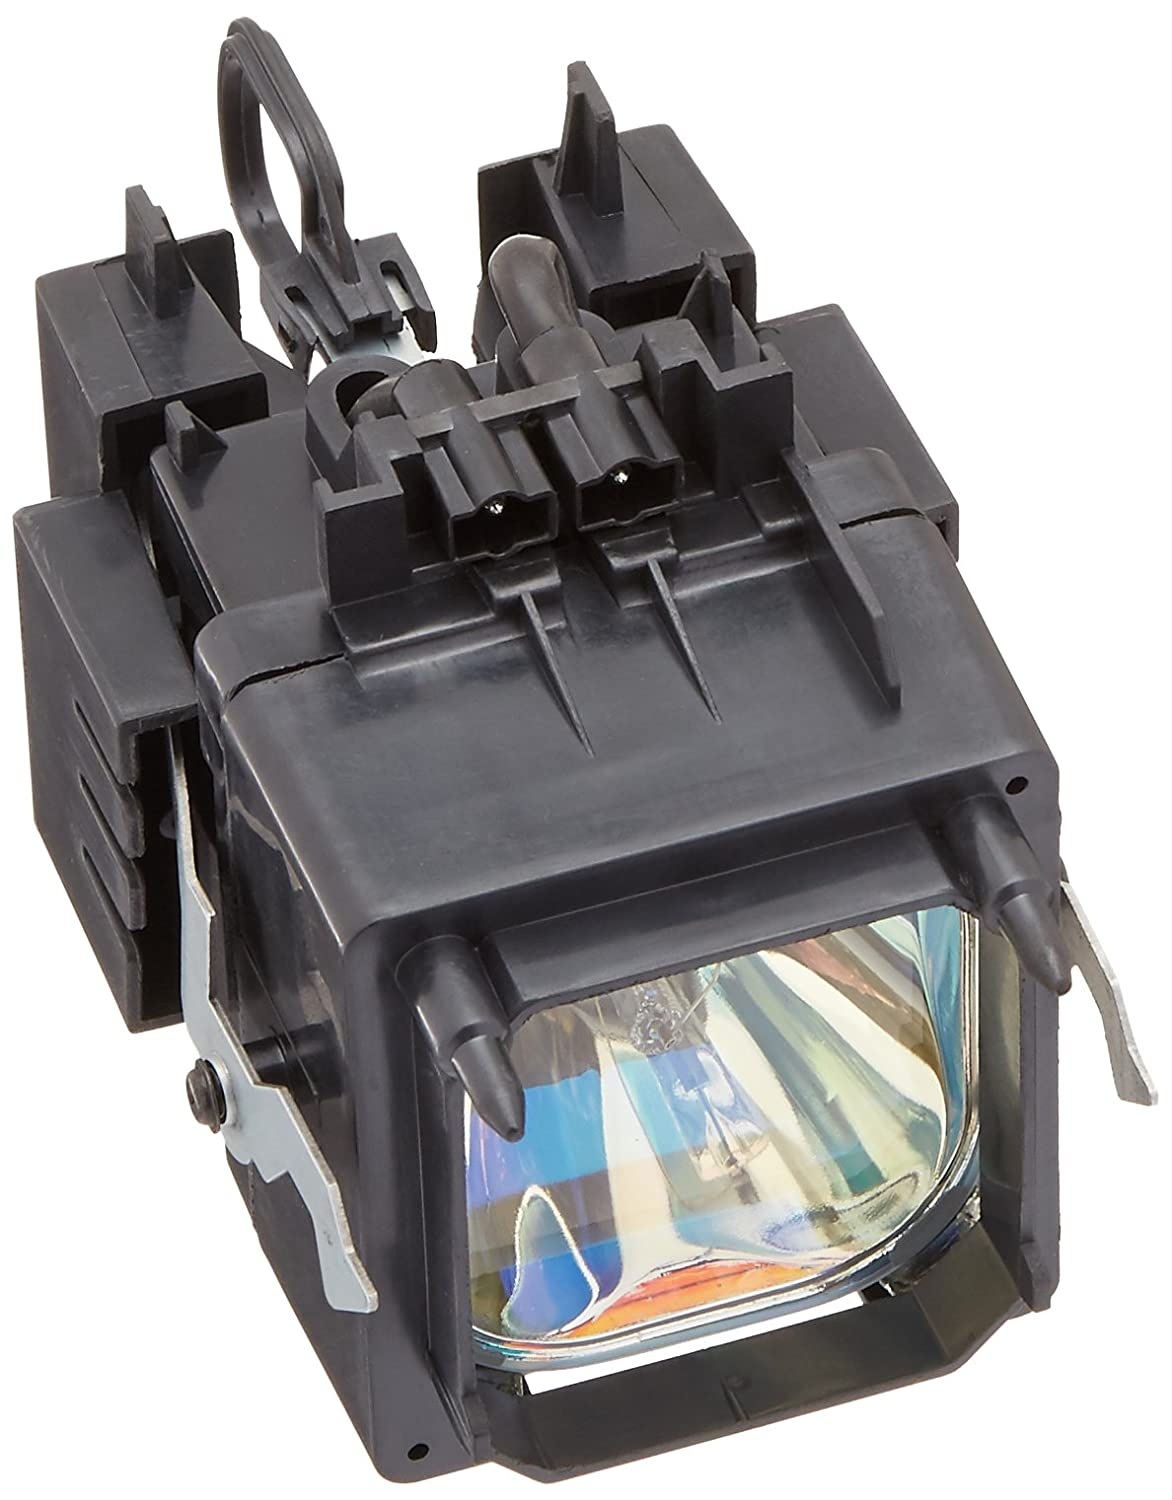 Kds R60xbr1 Kdsr60xbr1 Sony Xl 5100 Replacement Tv Lamp